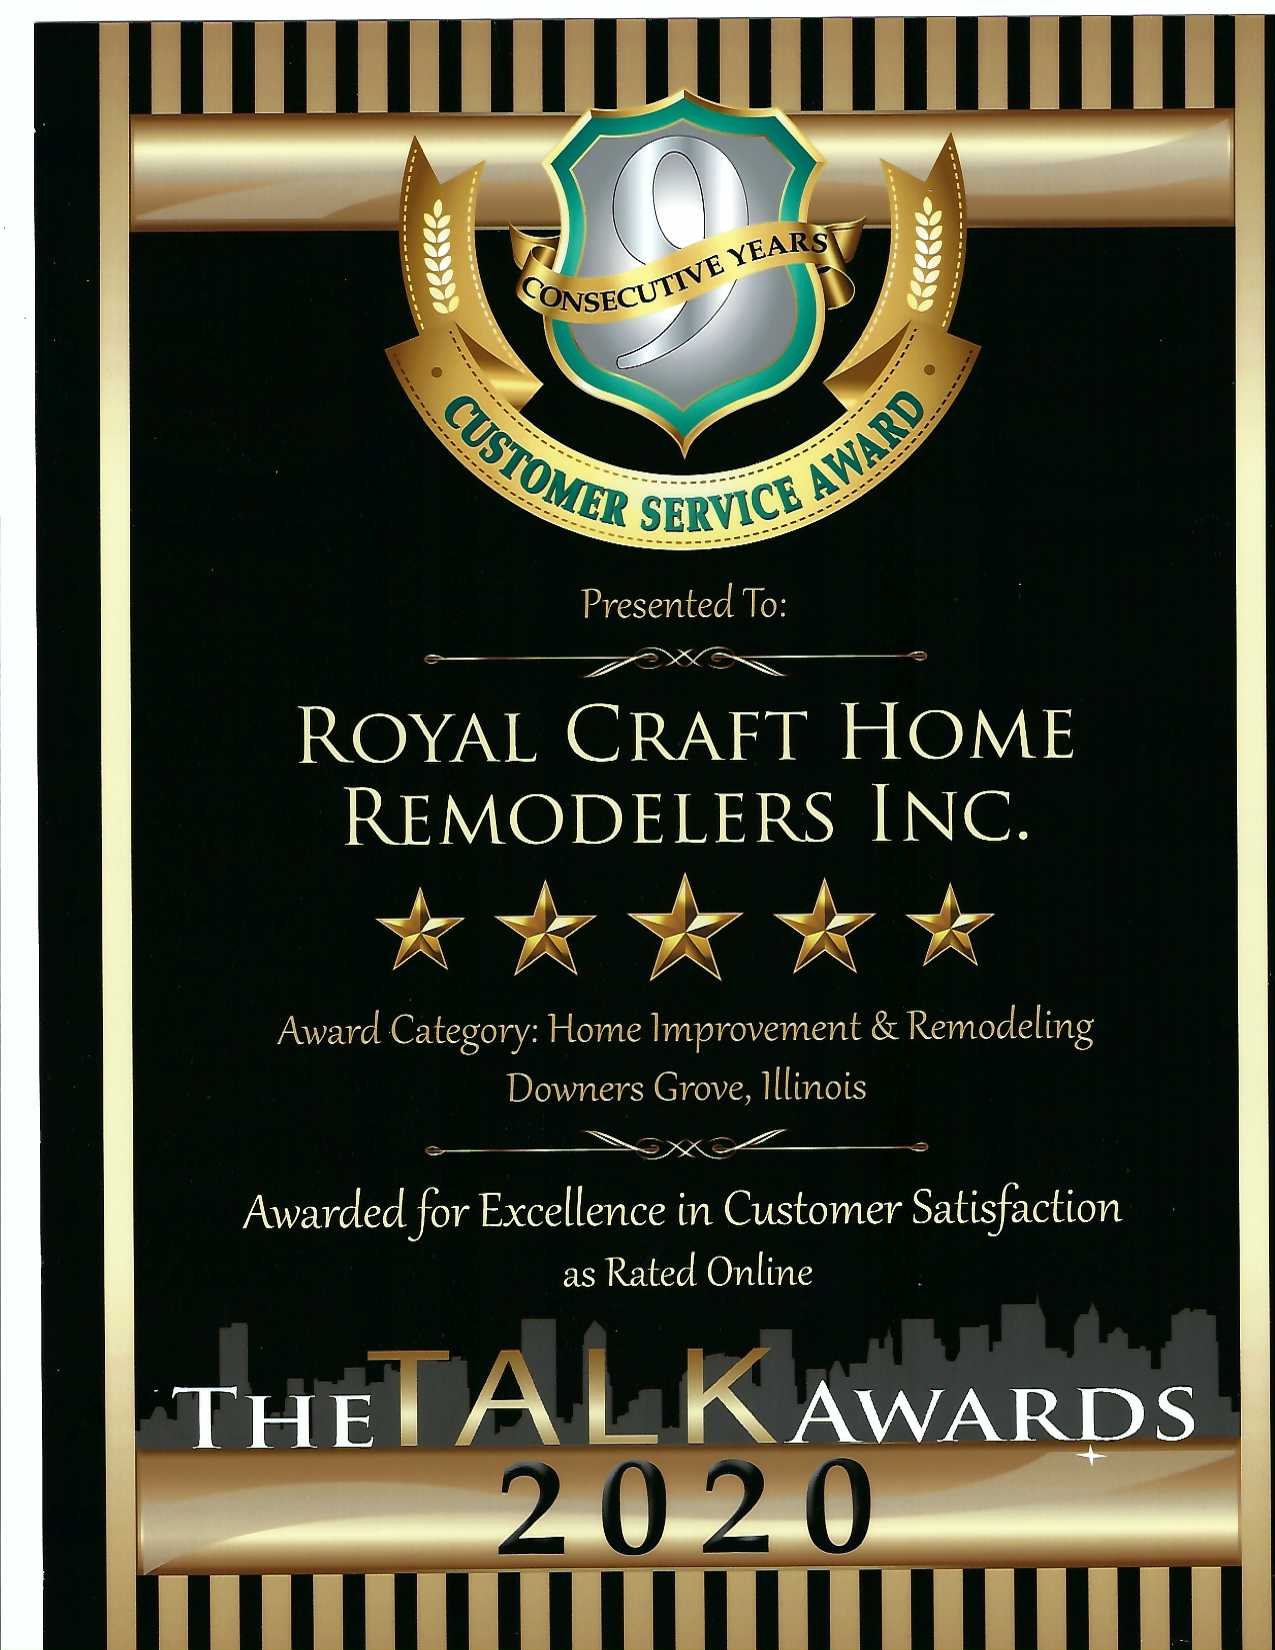 Royal Craft Home Remodelers Inc. Images